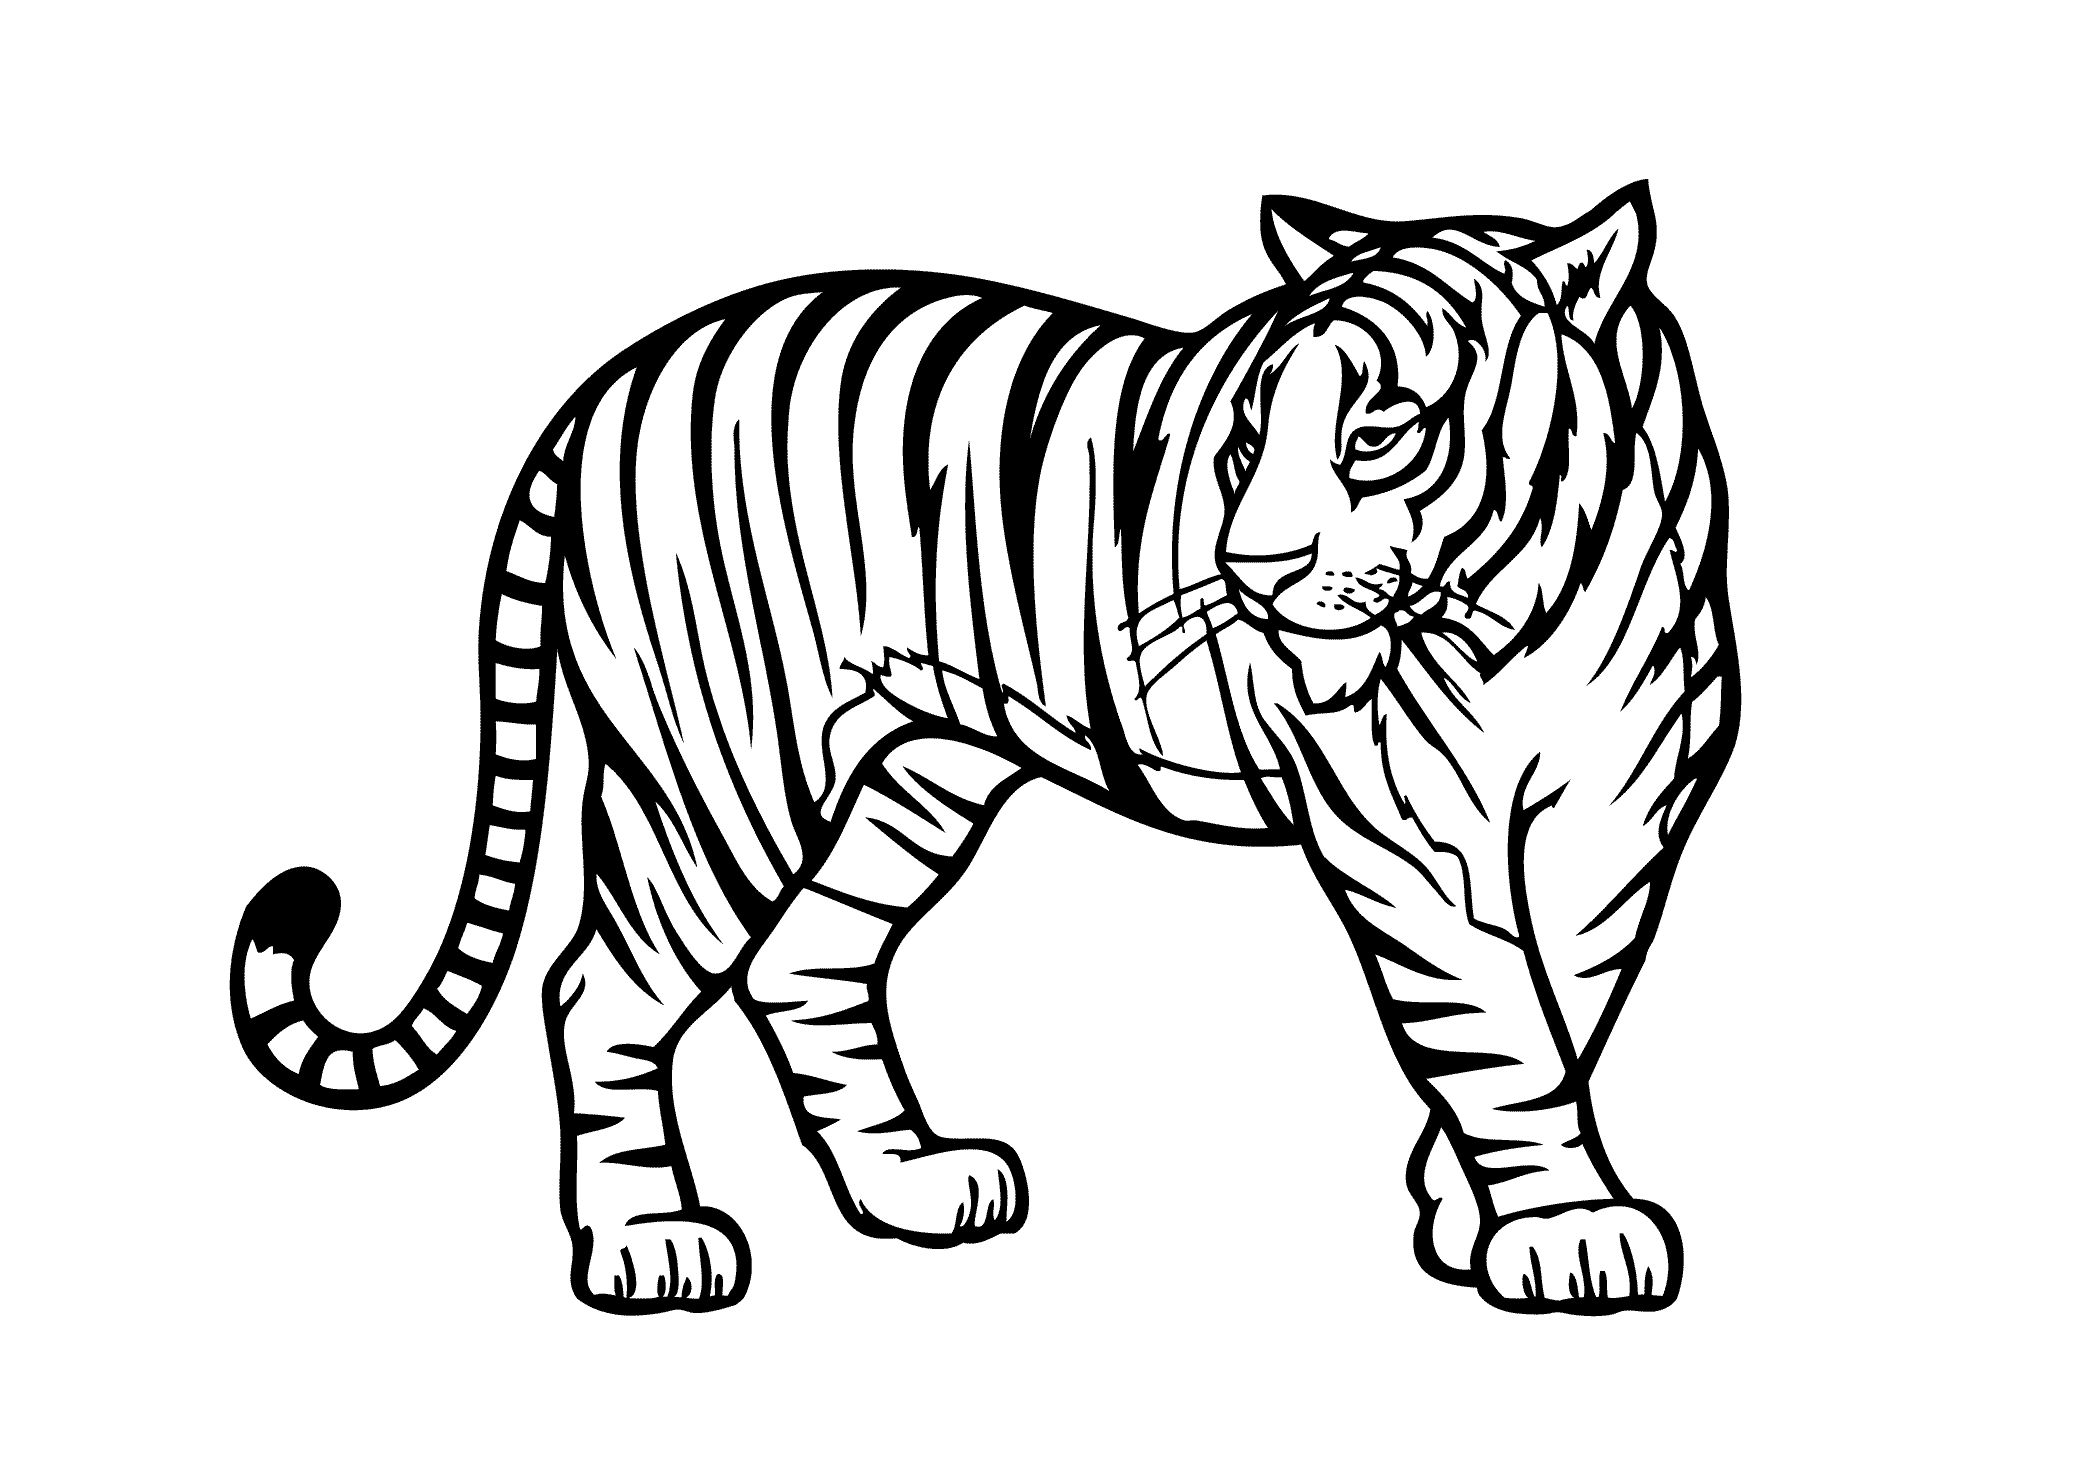 Tiger Coloring Pages And Tiger Wild Animals Coloring Pages For Kids Printable Free